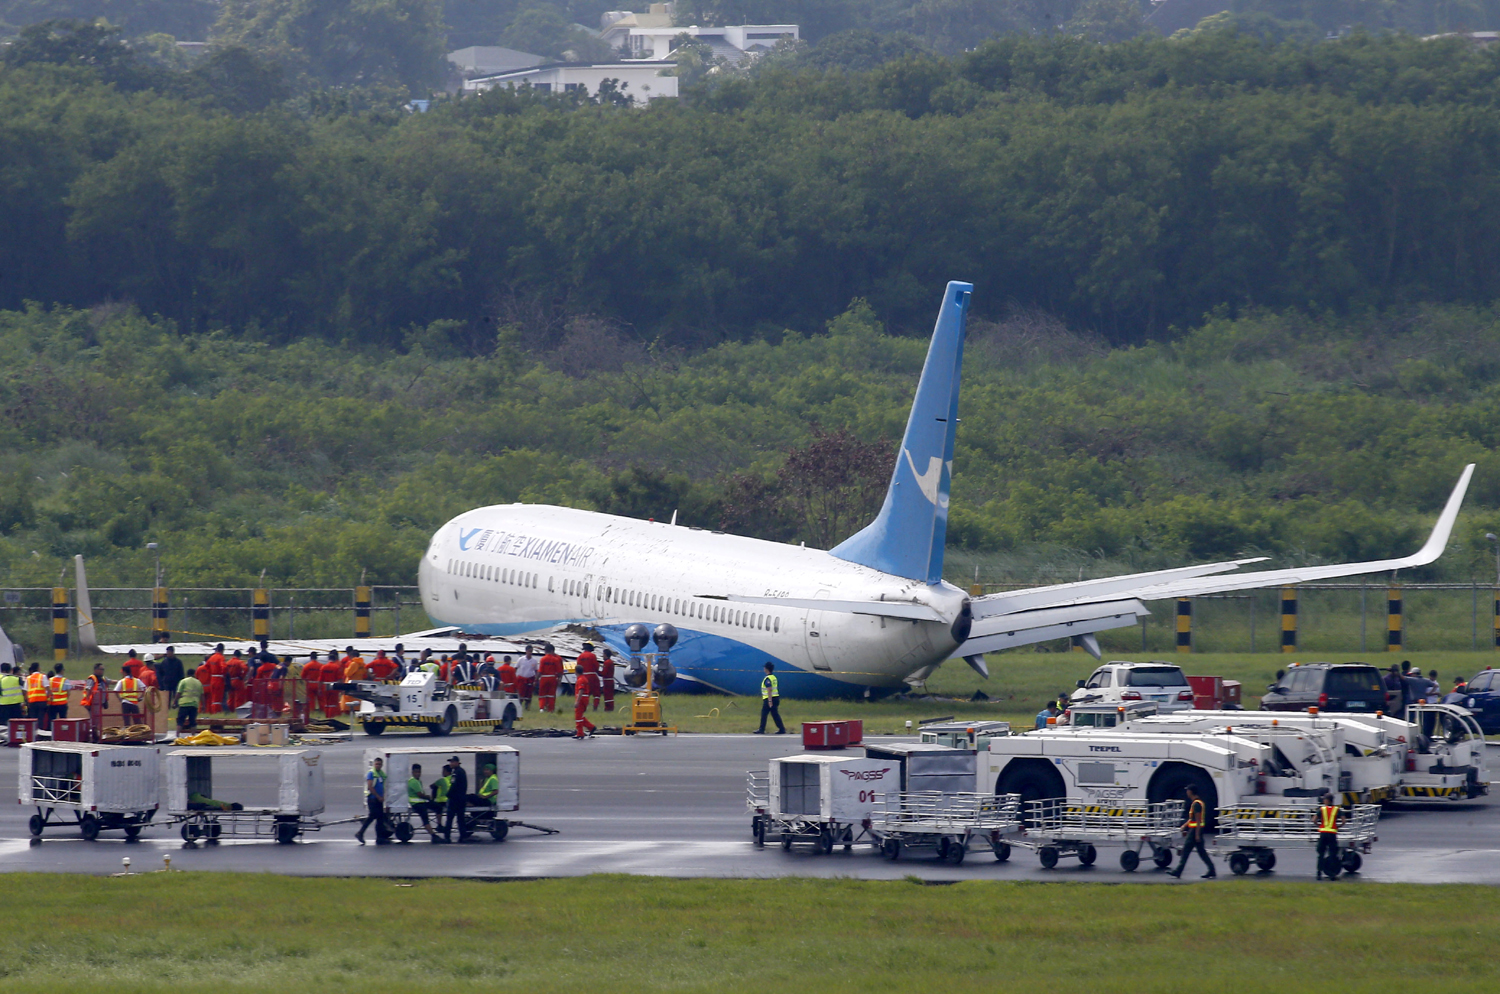 A Boeing passenger plane from China, a Xiamen Air, sits on the grassy portion of the runway of the Ninoy Aquino International Airport after it skidded off the runway while landing Friday, Aug. 17, 2018 in suburban Pasay city southeast of Manila, Philippines. All the passengers and crew of Xiamen Air Flight 8667 were safe and were taken to an airport terminal, where they were given blankets and food before being taken to a hotel. [Photo: AP/Bullit Marquez]